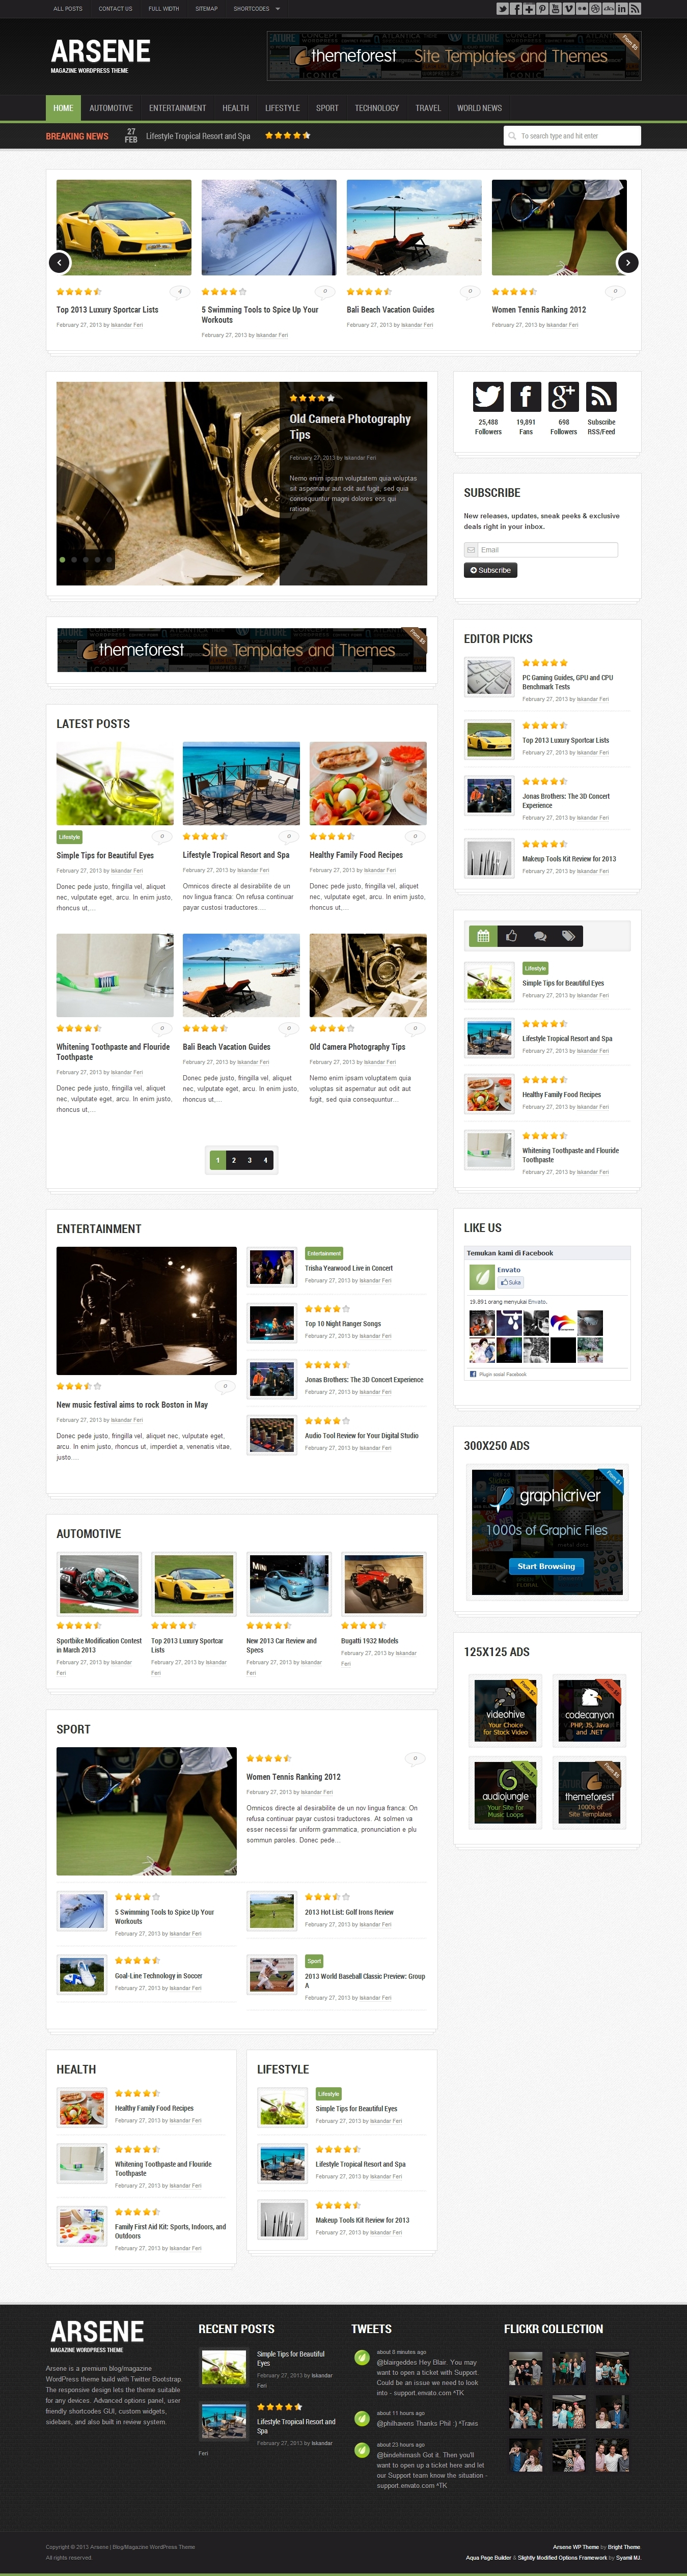 Arsene - Blog/Magazine WordPress Theme